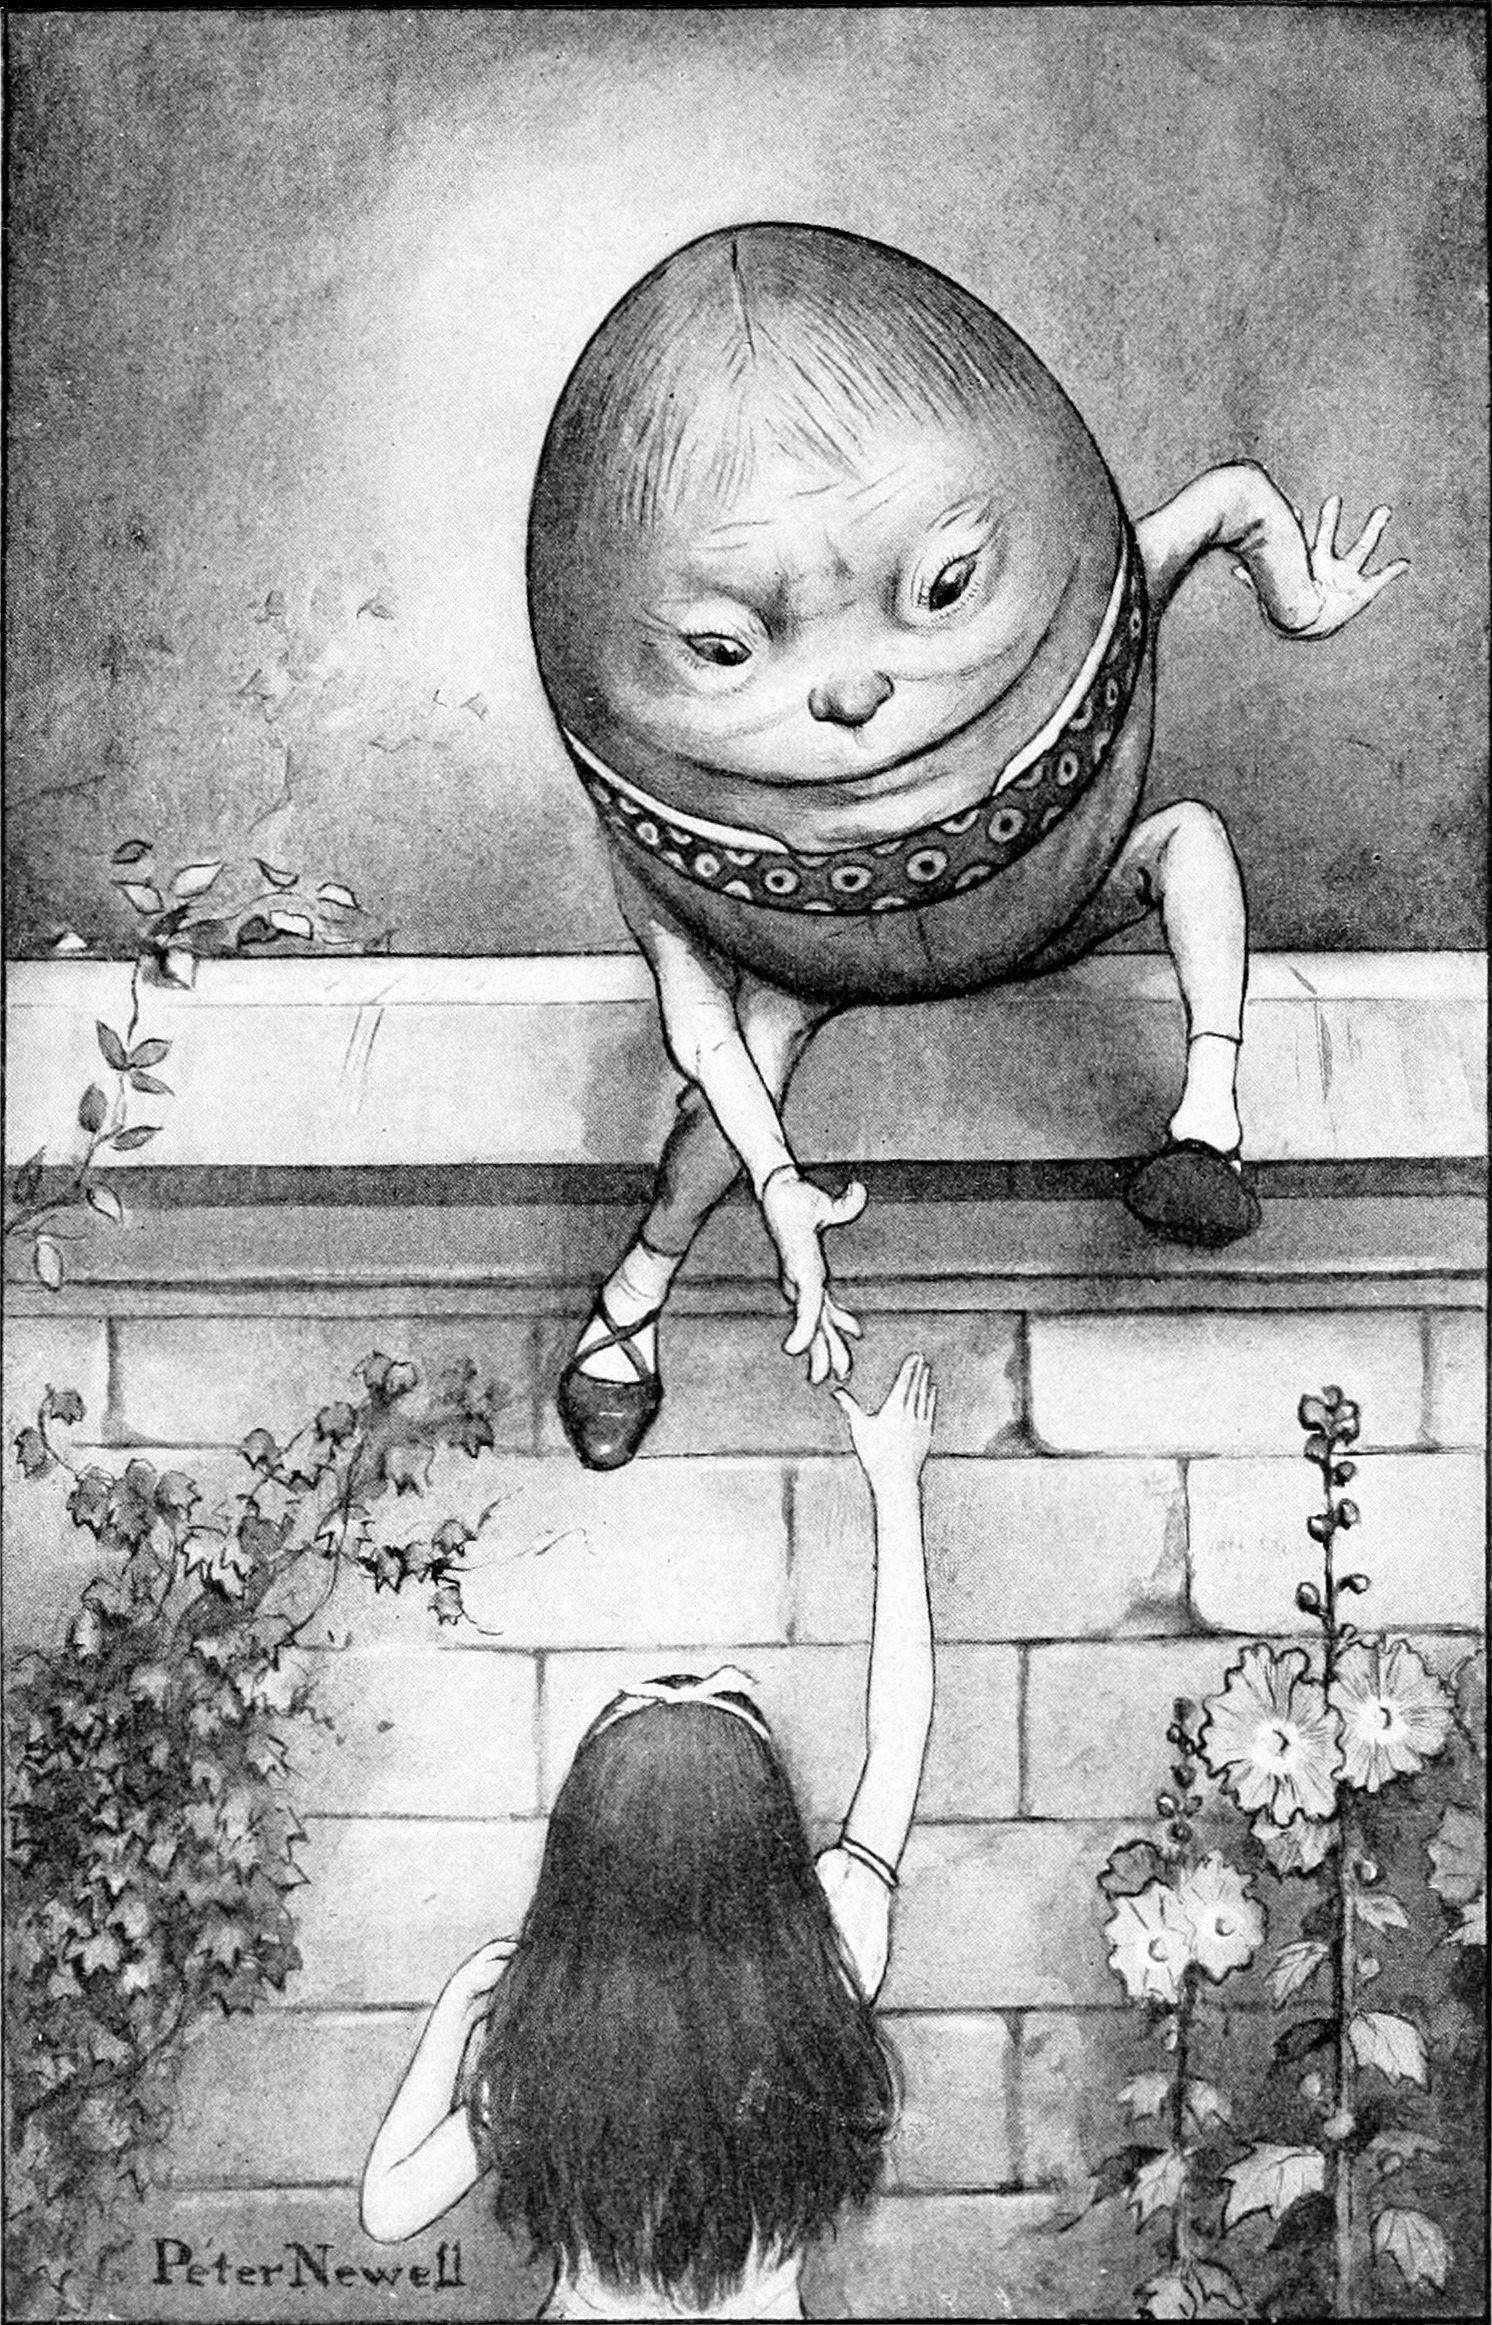 Through the Looking Glass, Humpty Dumpty